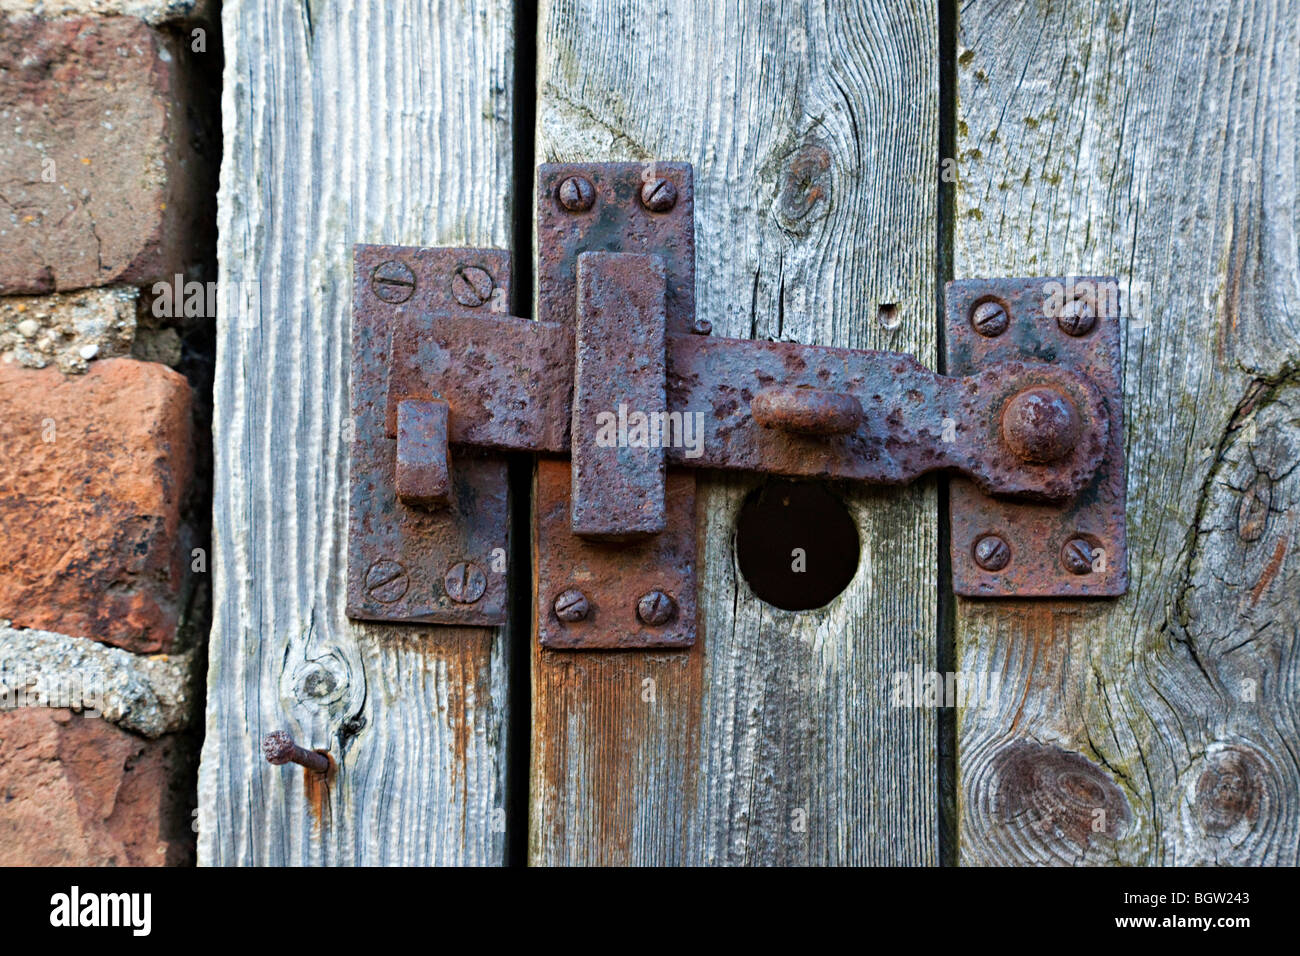 rusty old latch lever lock - Stock Image